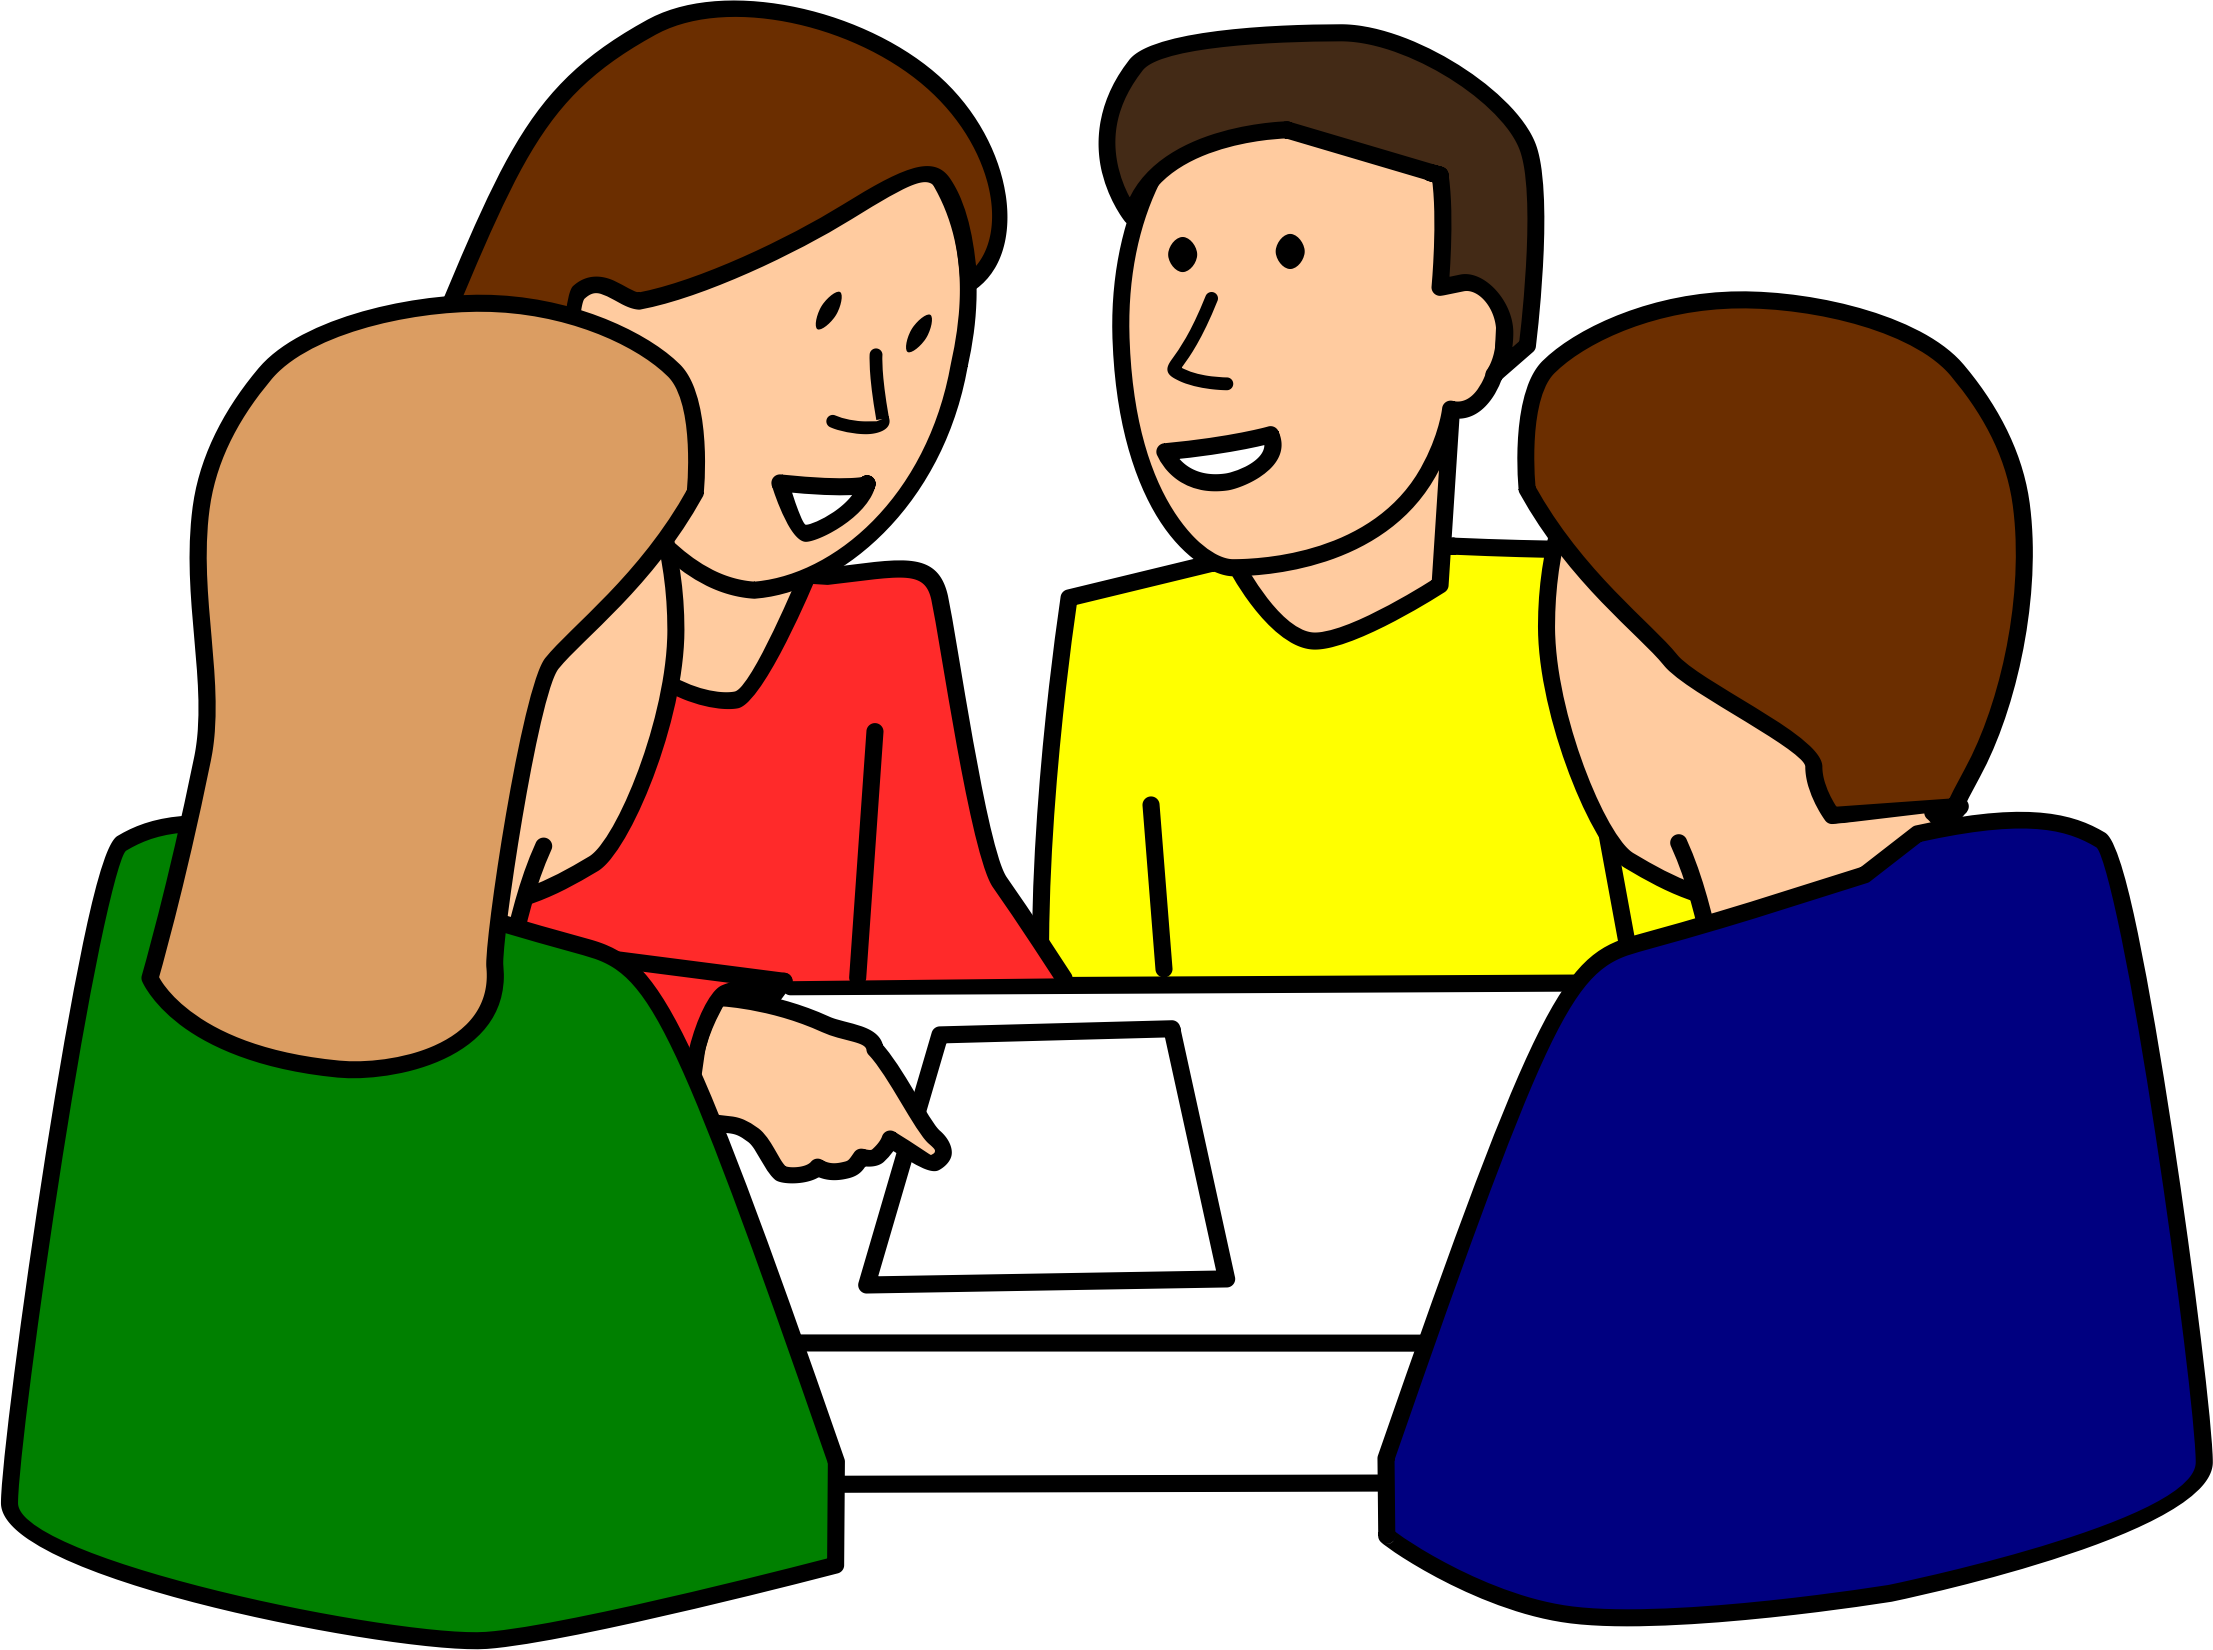 png freeuse stock Free learning group cliparts. Kids talking to each other clipart